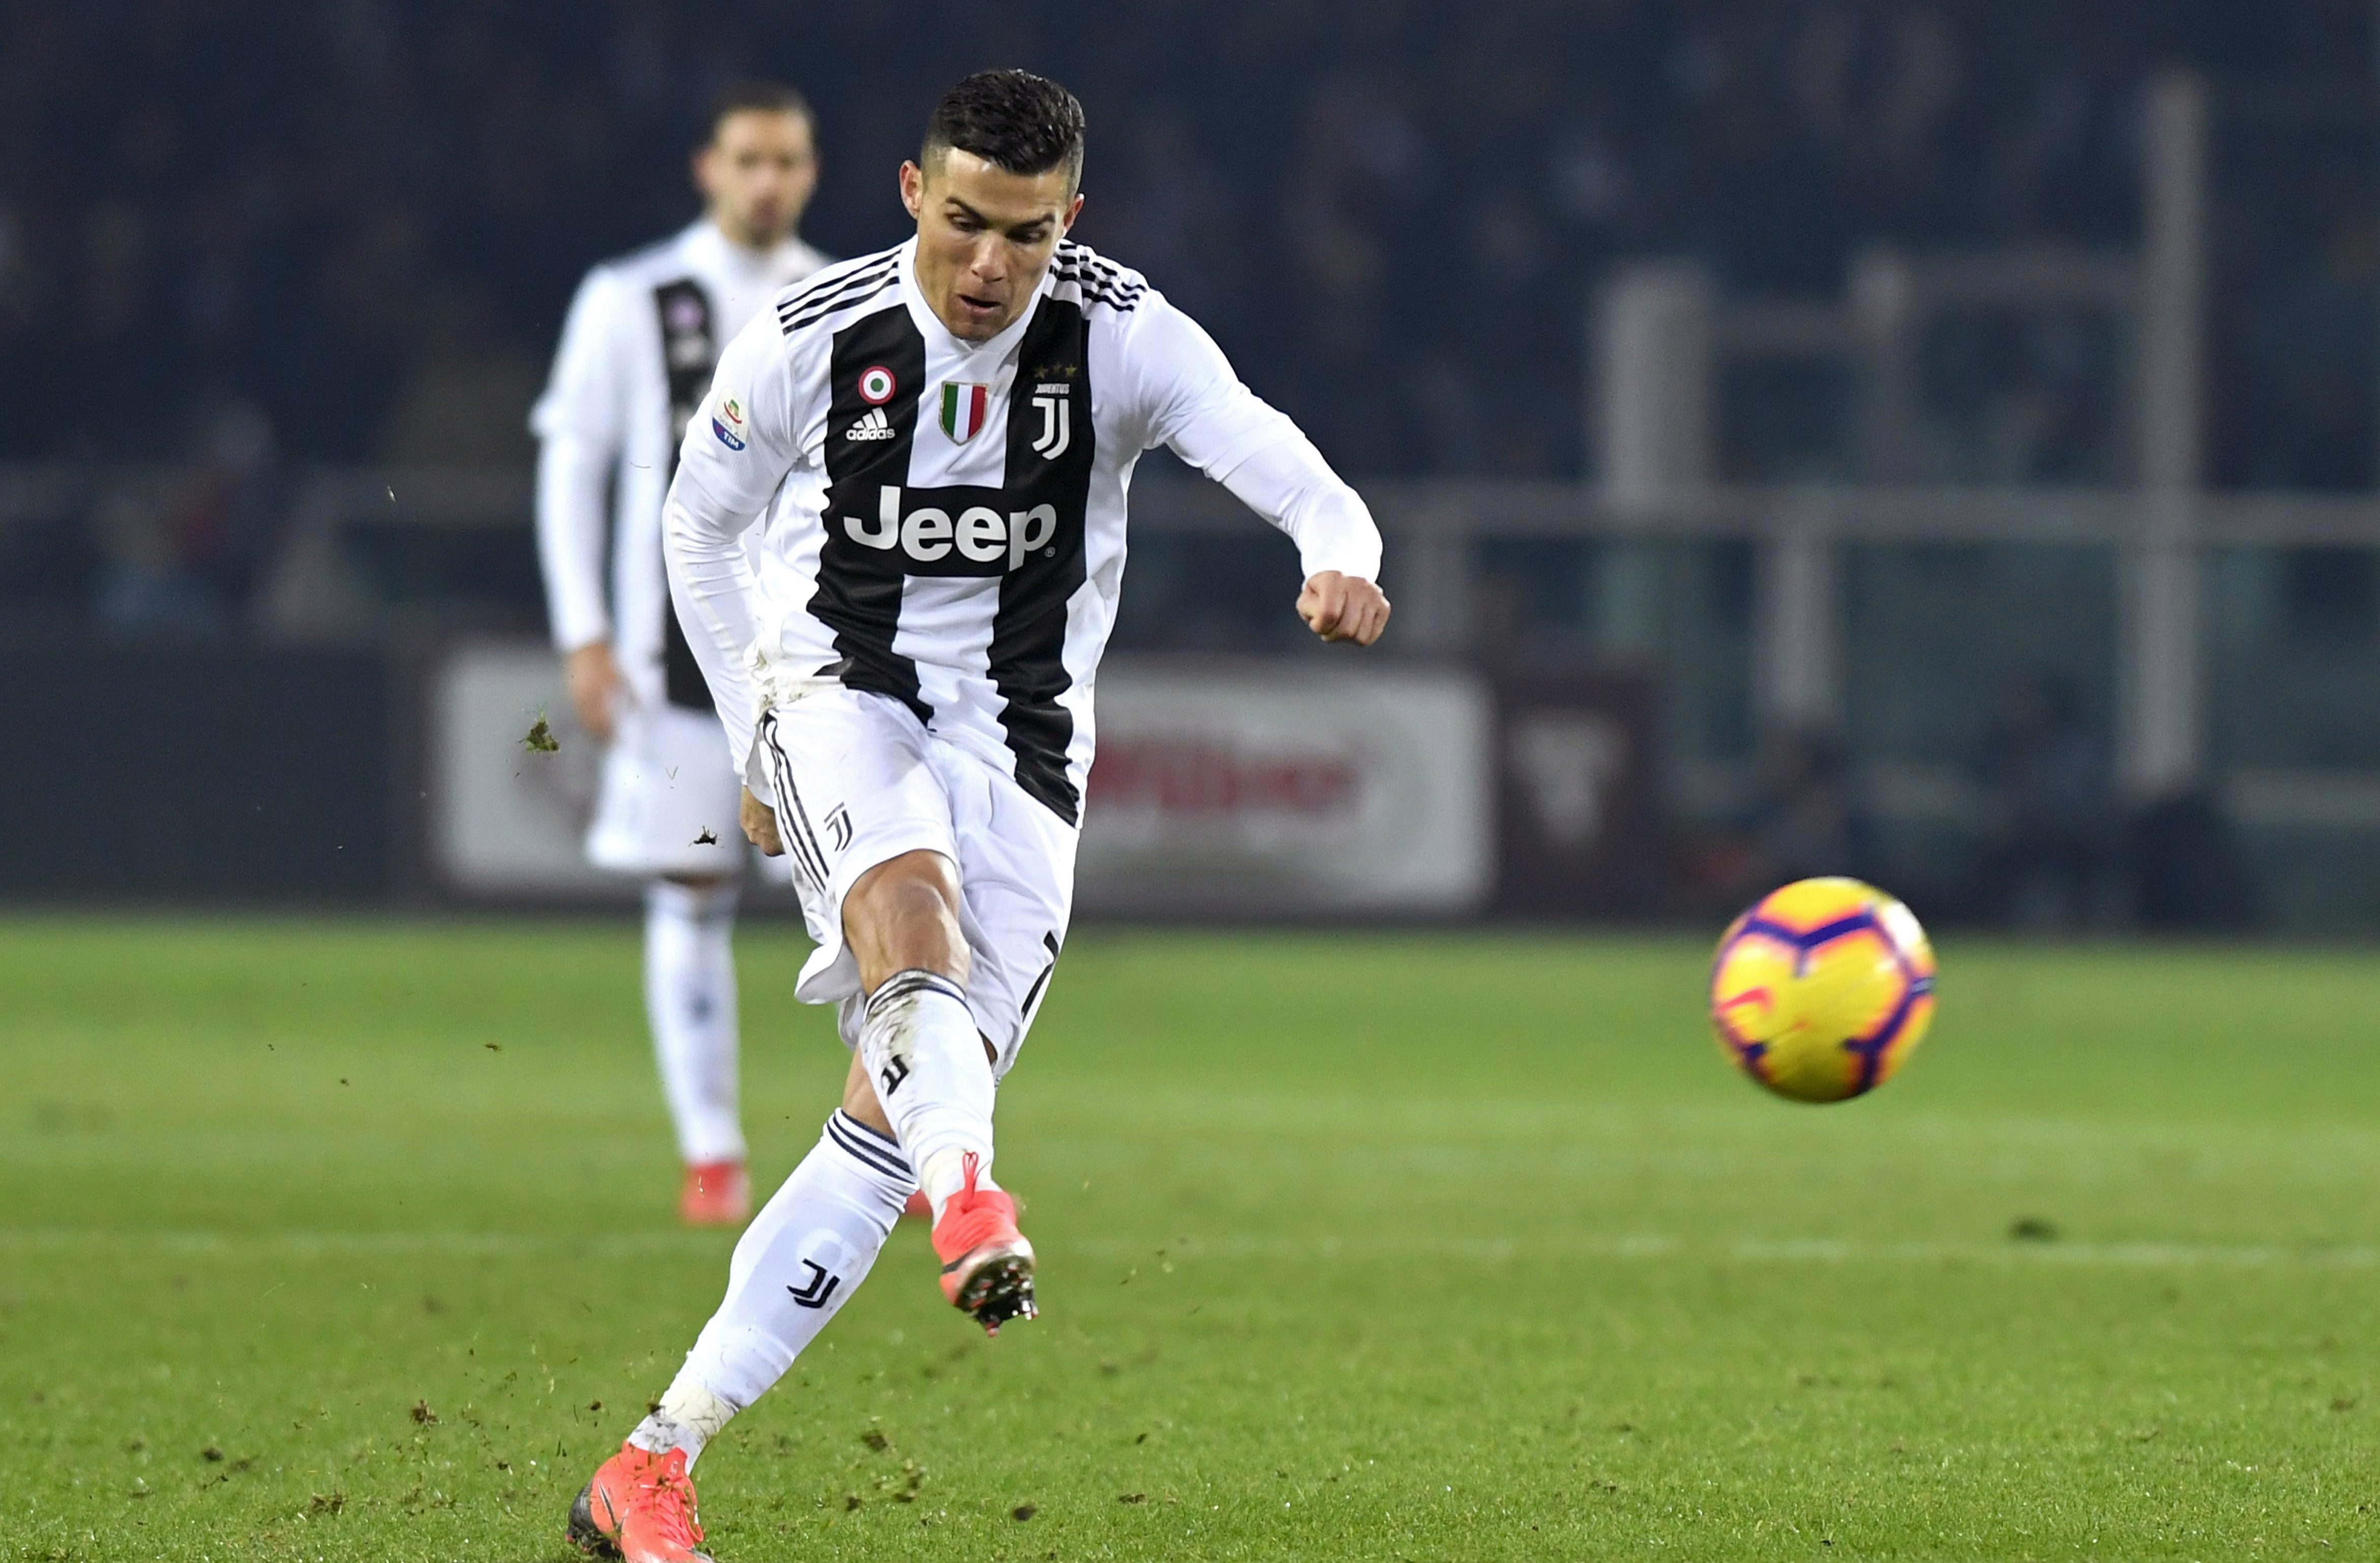 The Juventus star made the headlines with this botched free-kick attempt